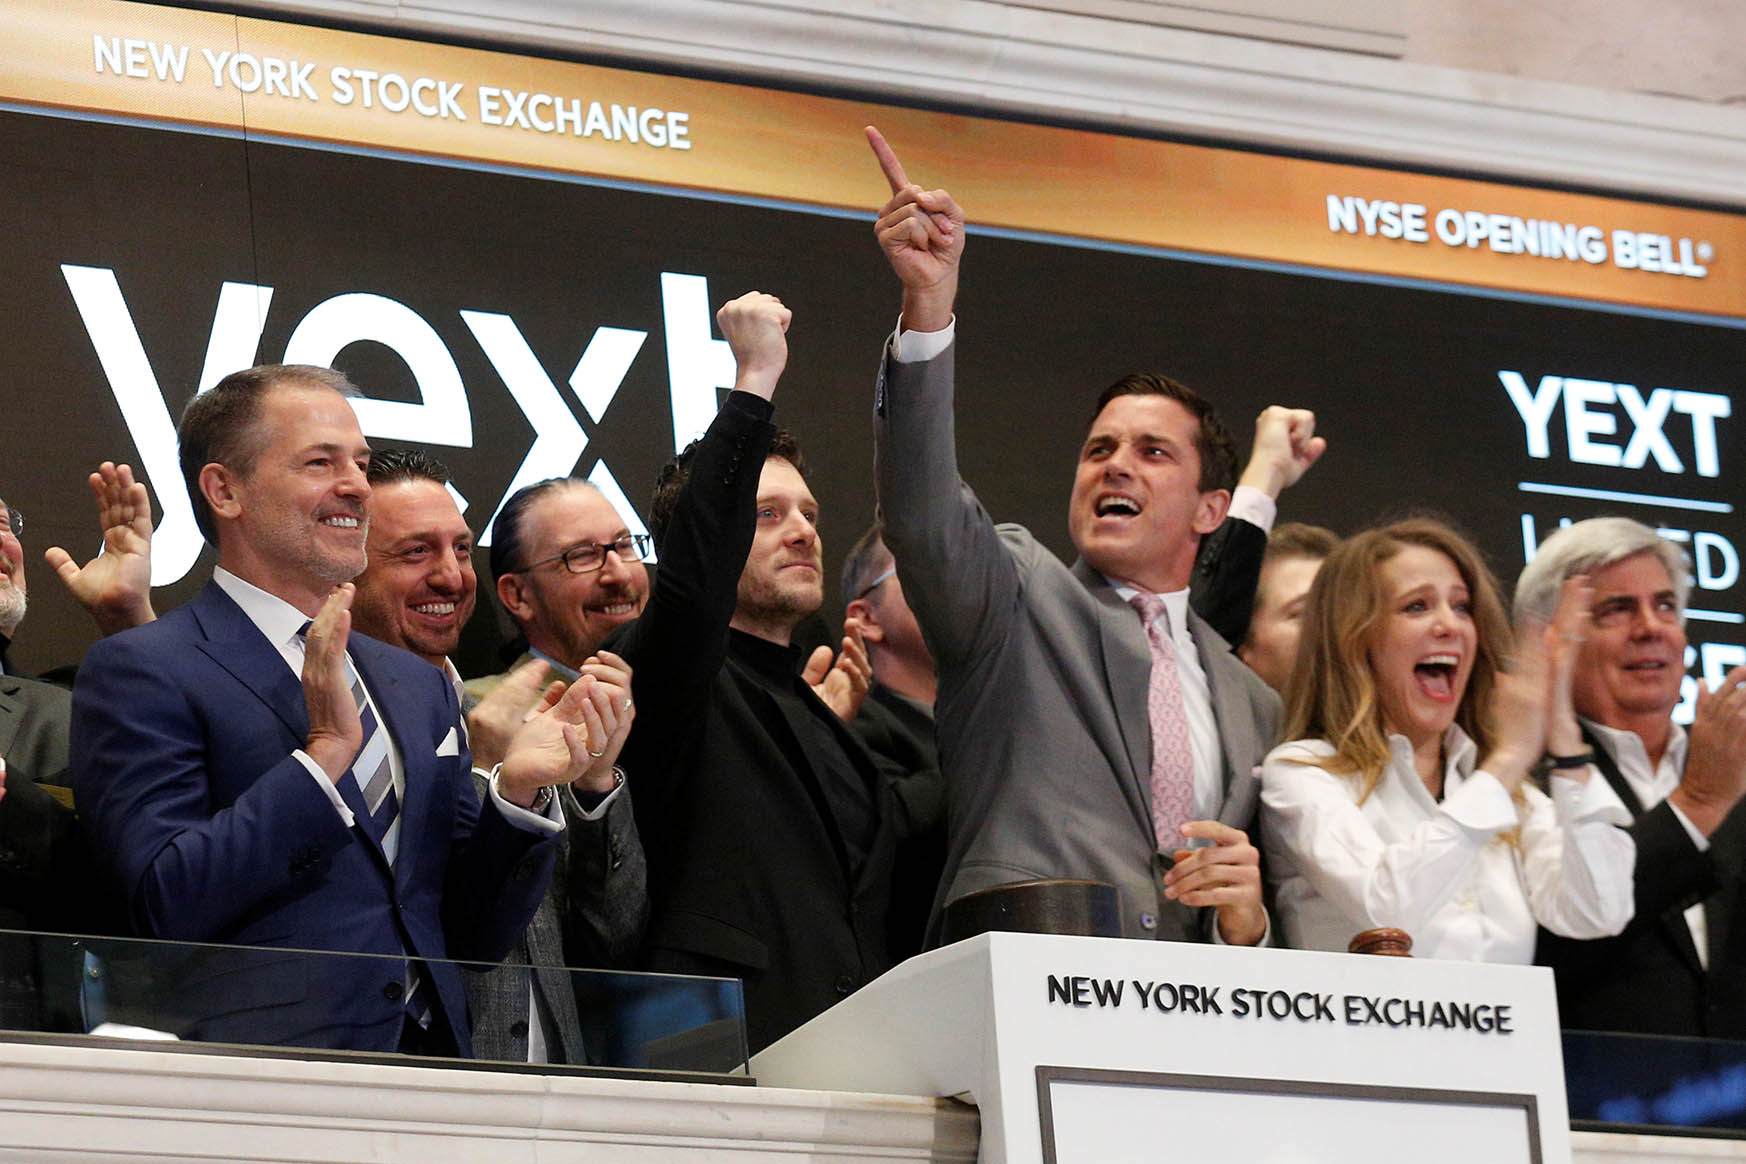 Yext sees 39% revenue growth in latest quarter